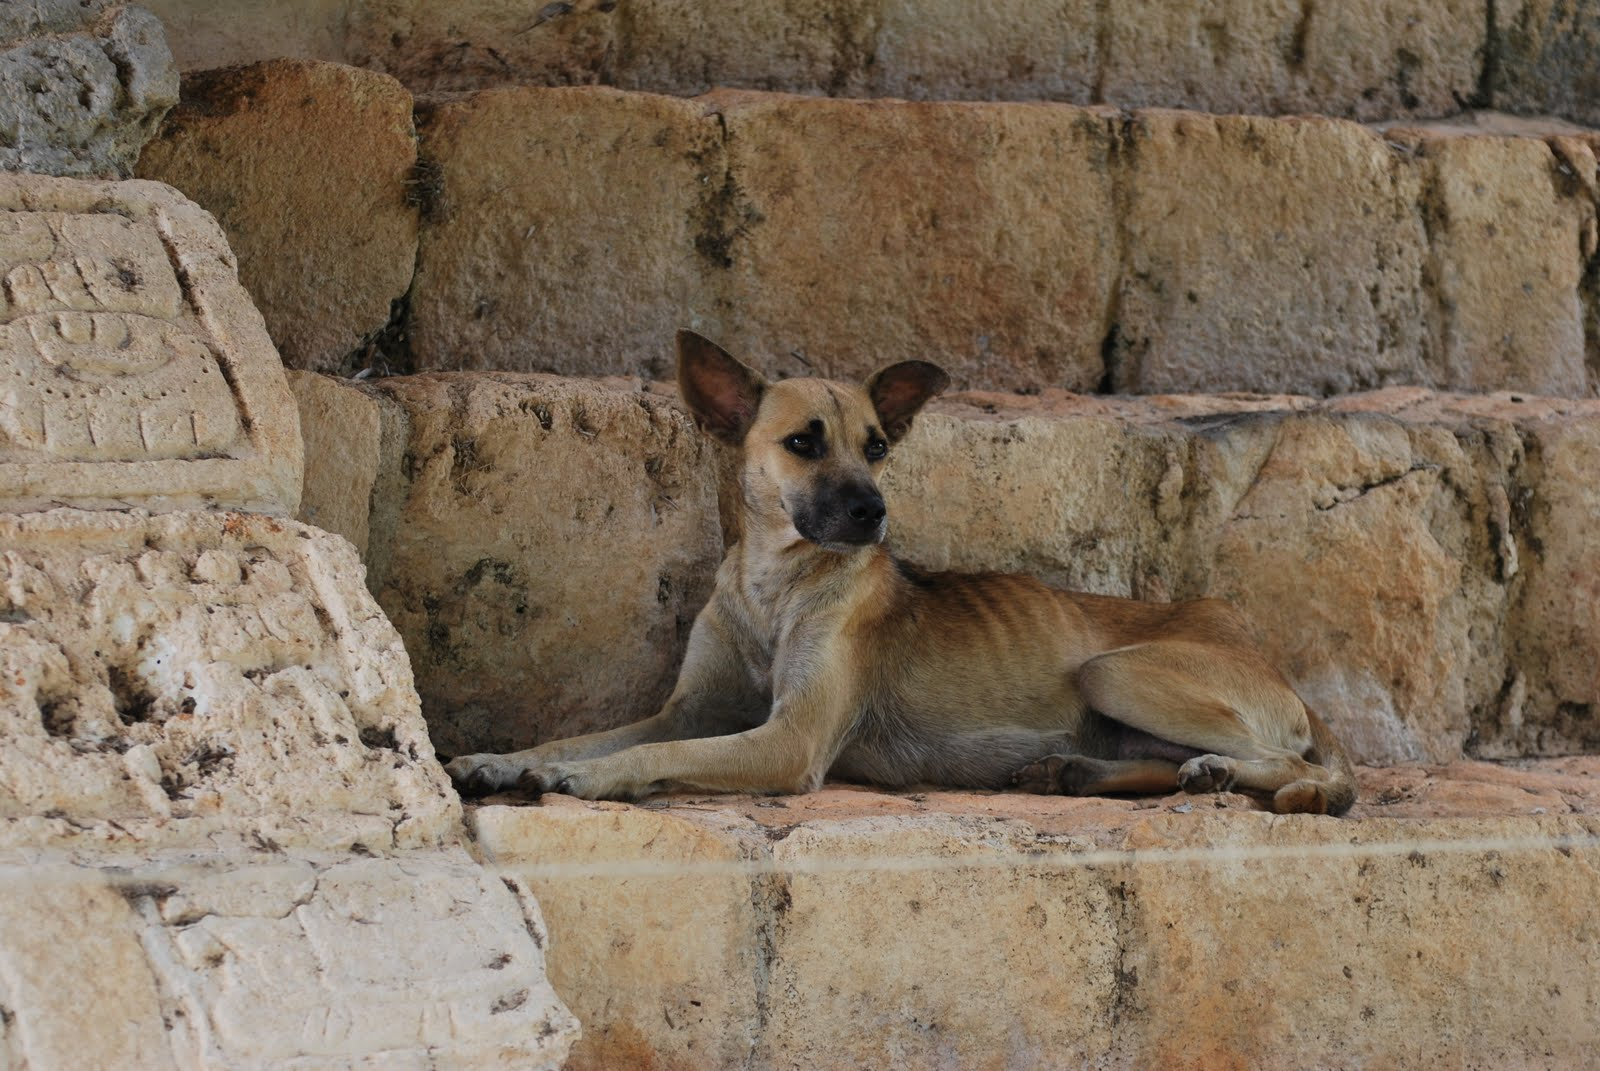 an analysis of the stray dog Analysis of literary element: the stray dog focuses on love, kindness, and compassion we see a stray dog who is nothing but happy to play with a family of strangers.